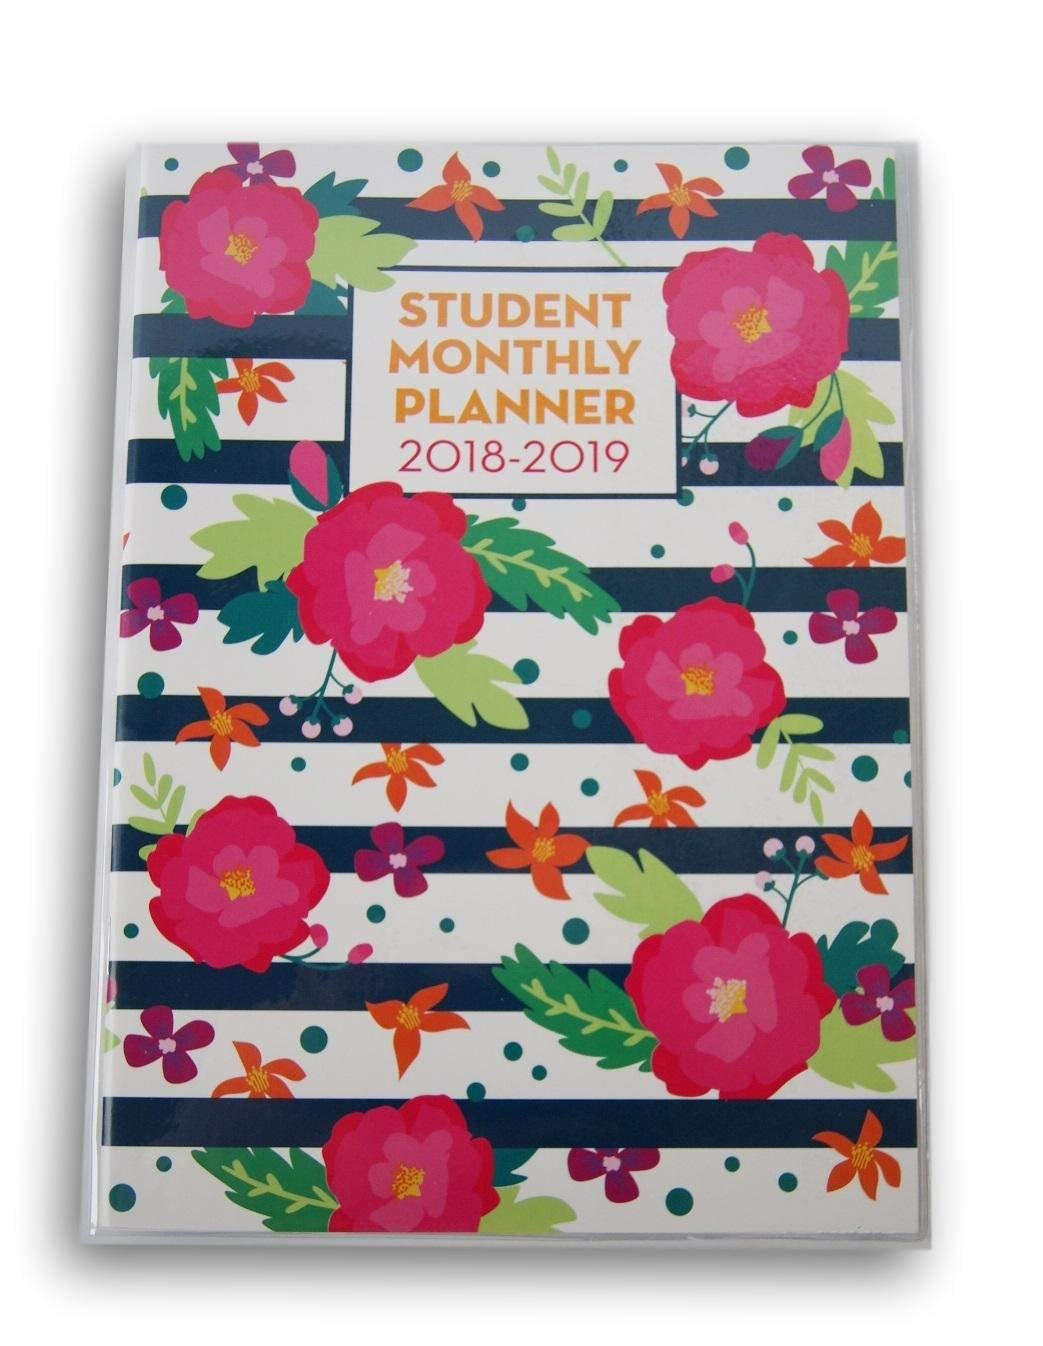 School Monthly Planner for 2018-2019 (Floral)